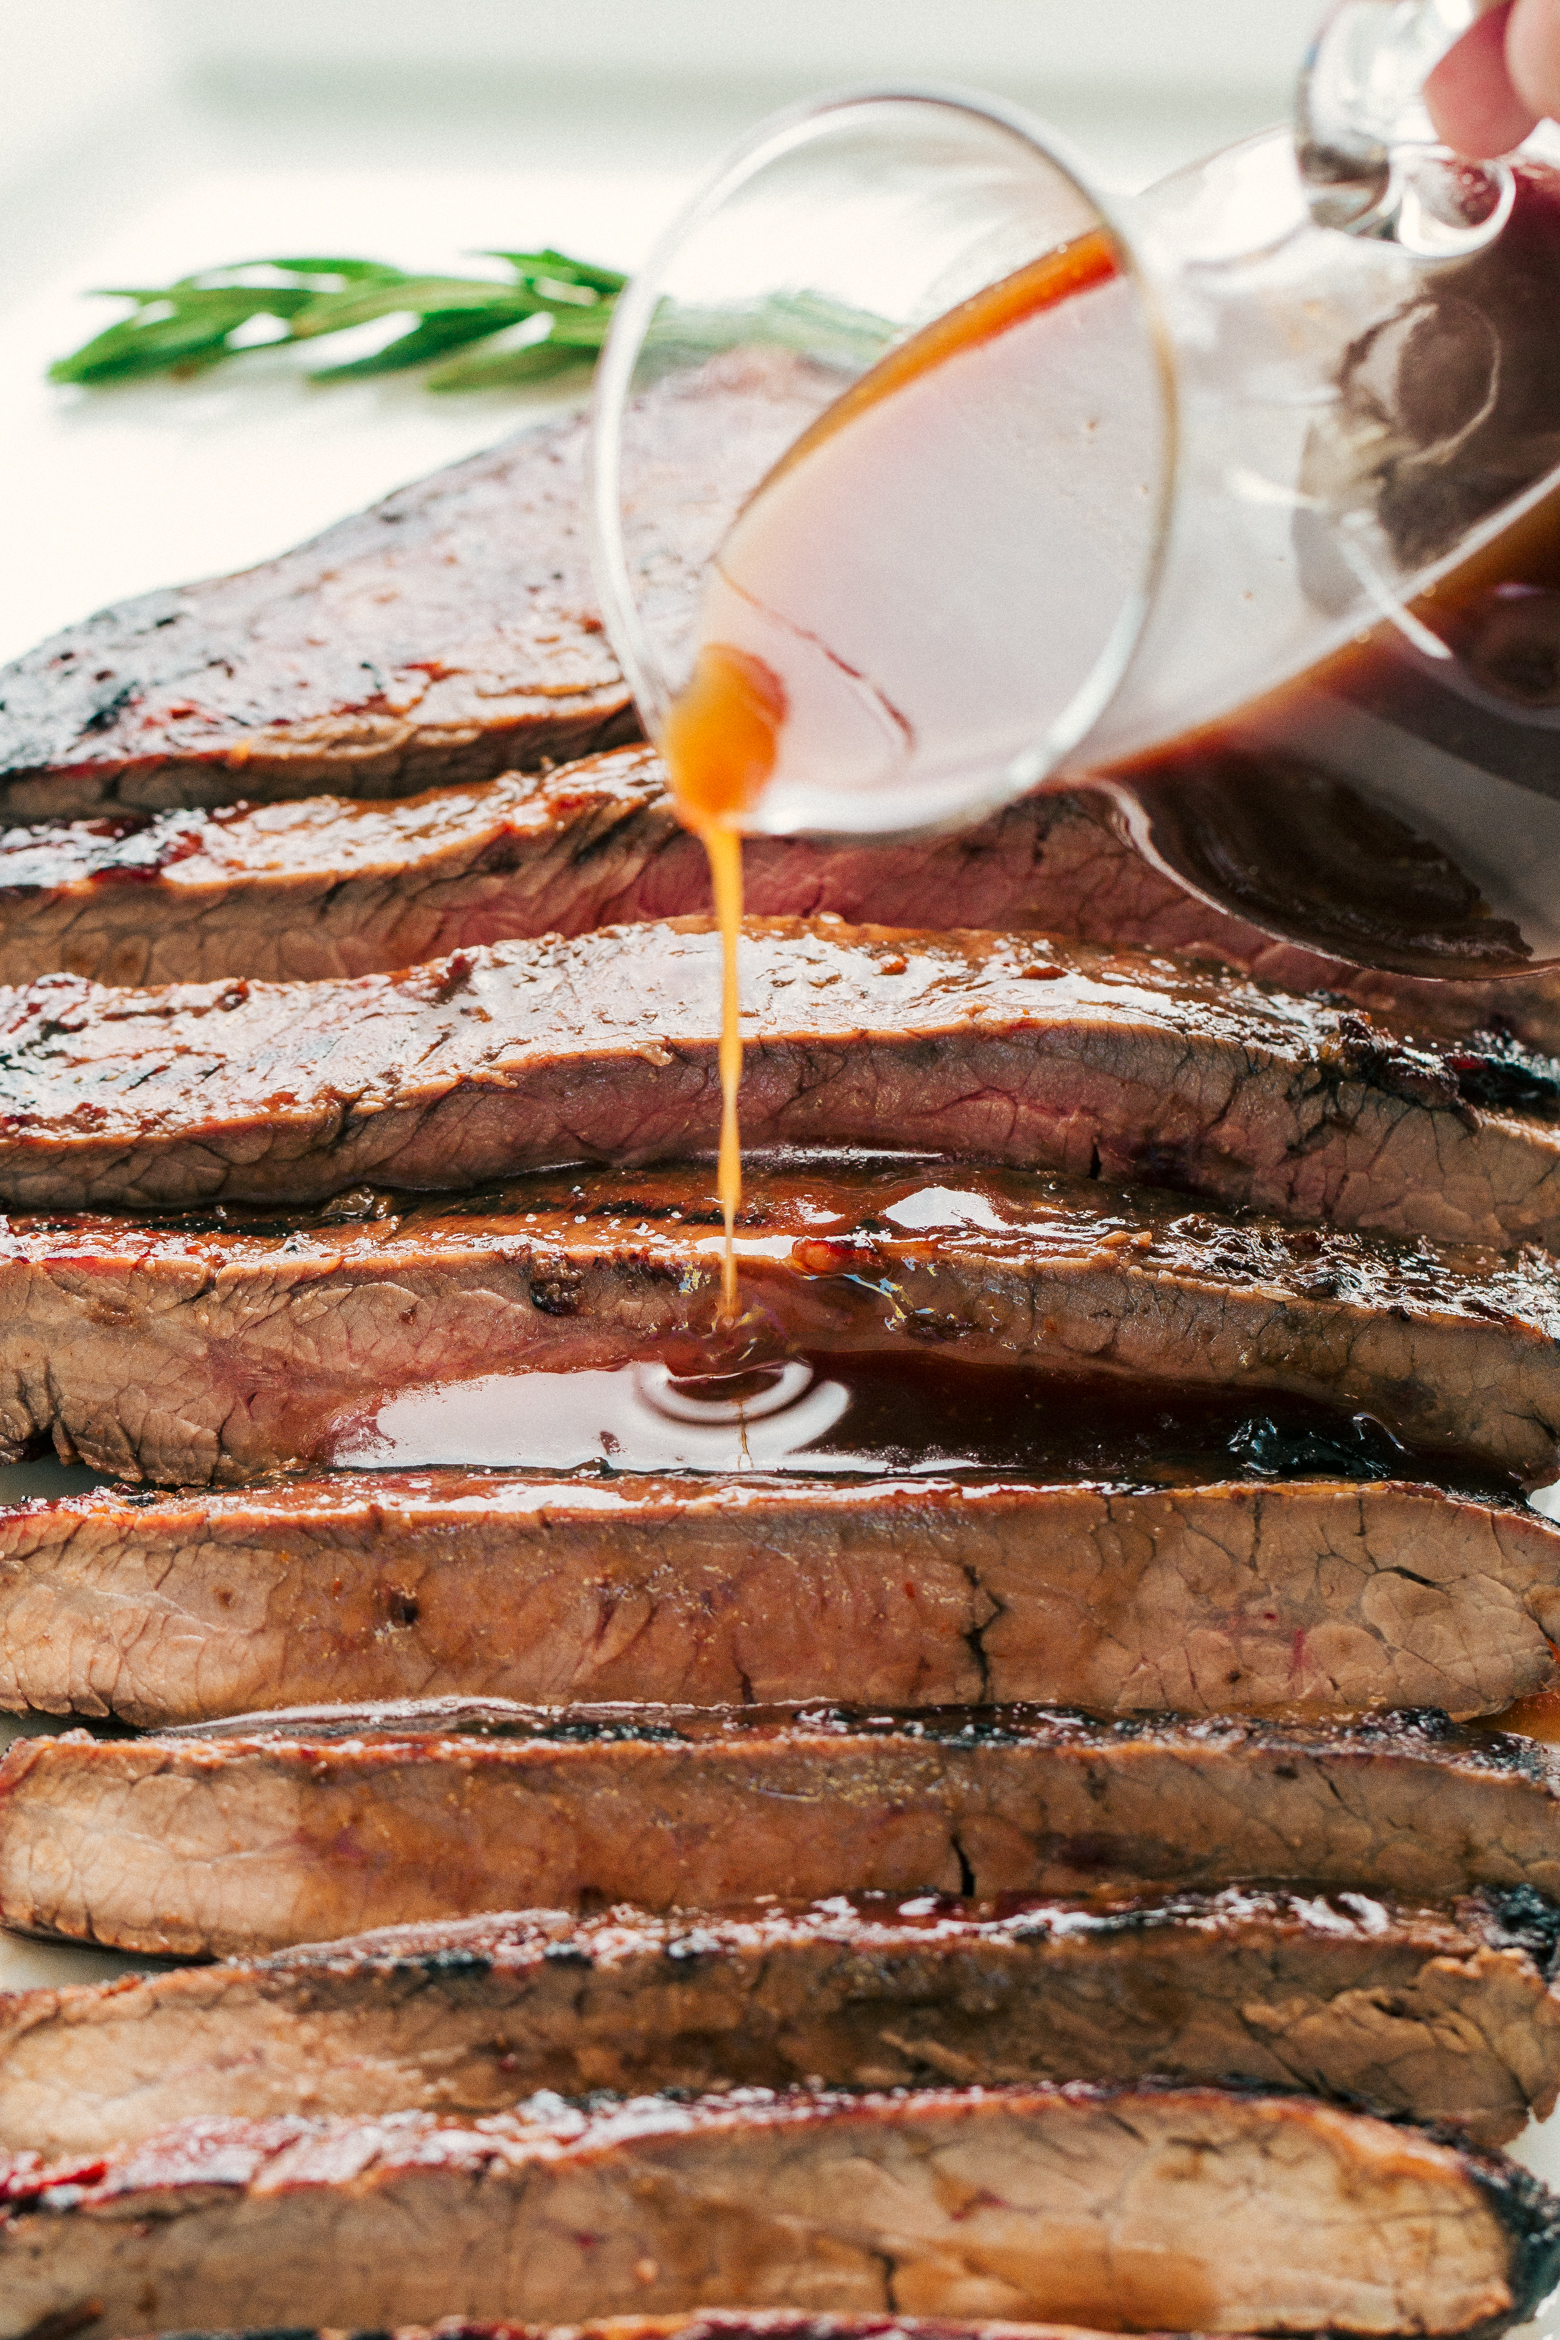 The best flank steak recipe being topped with a delicious marinade, perfect for dinner any night by The Food Cafe.